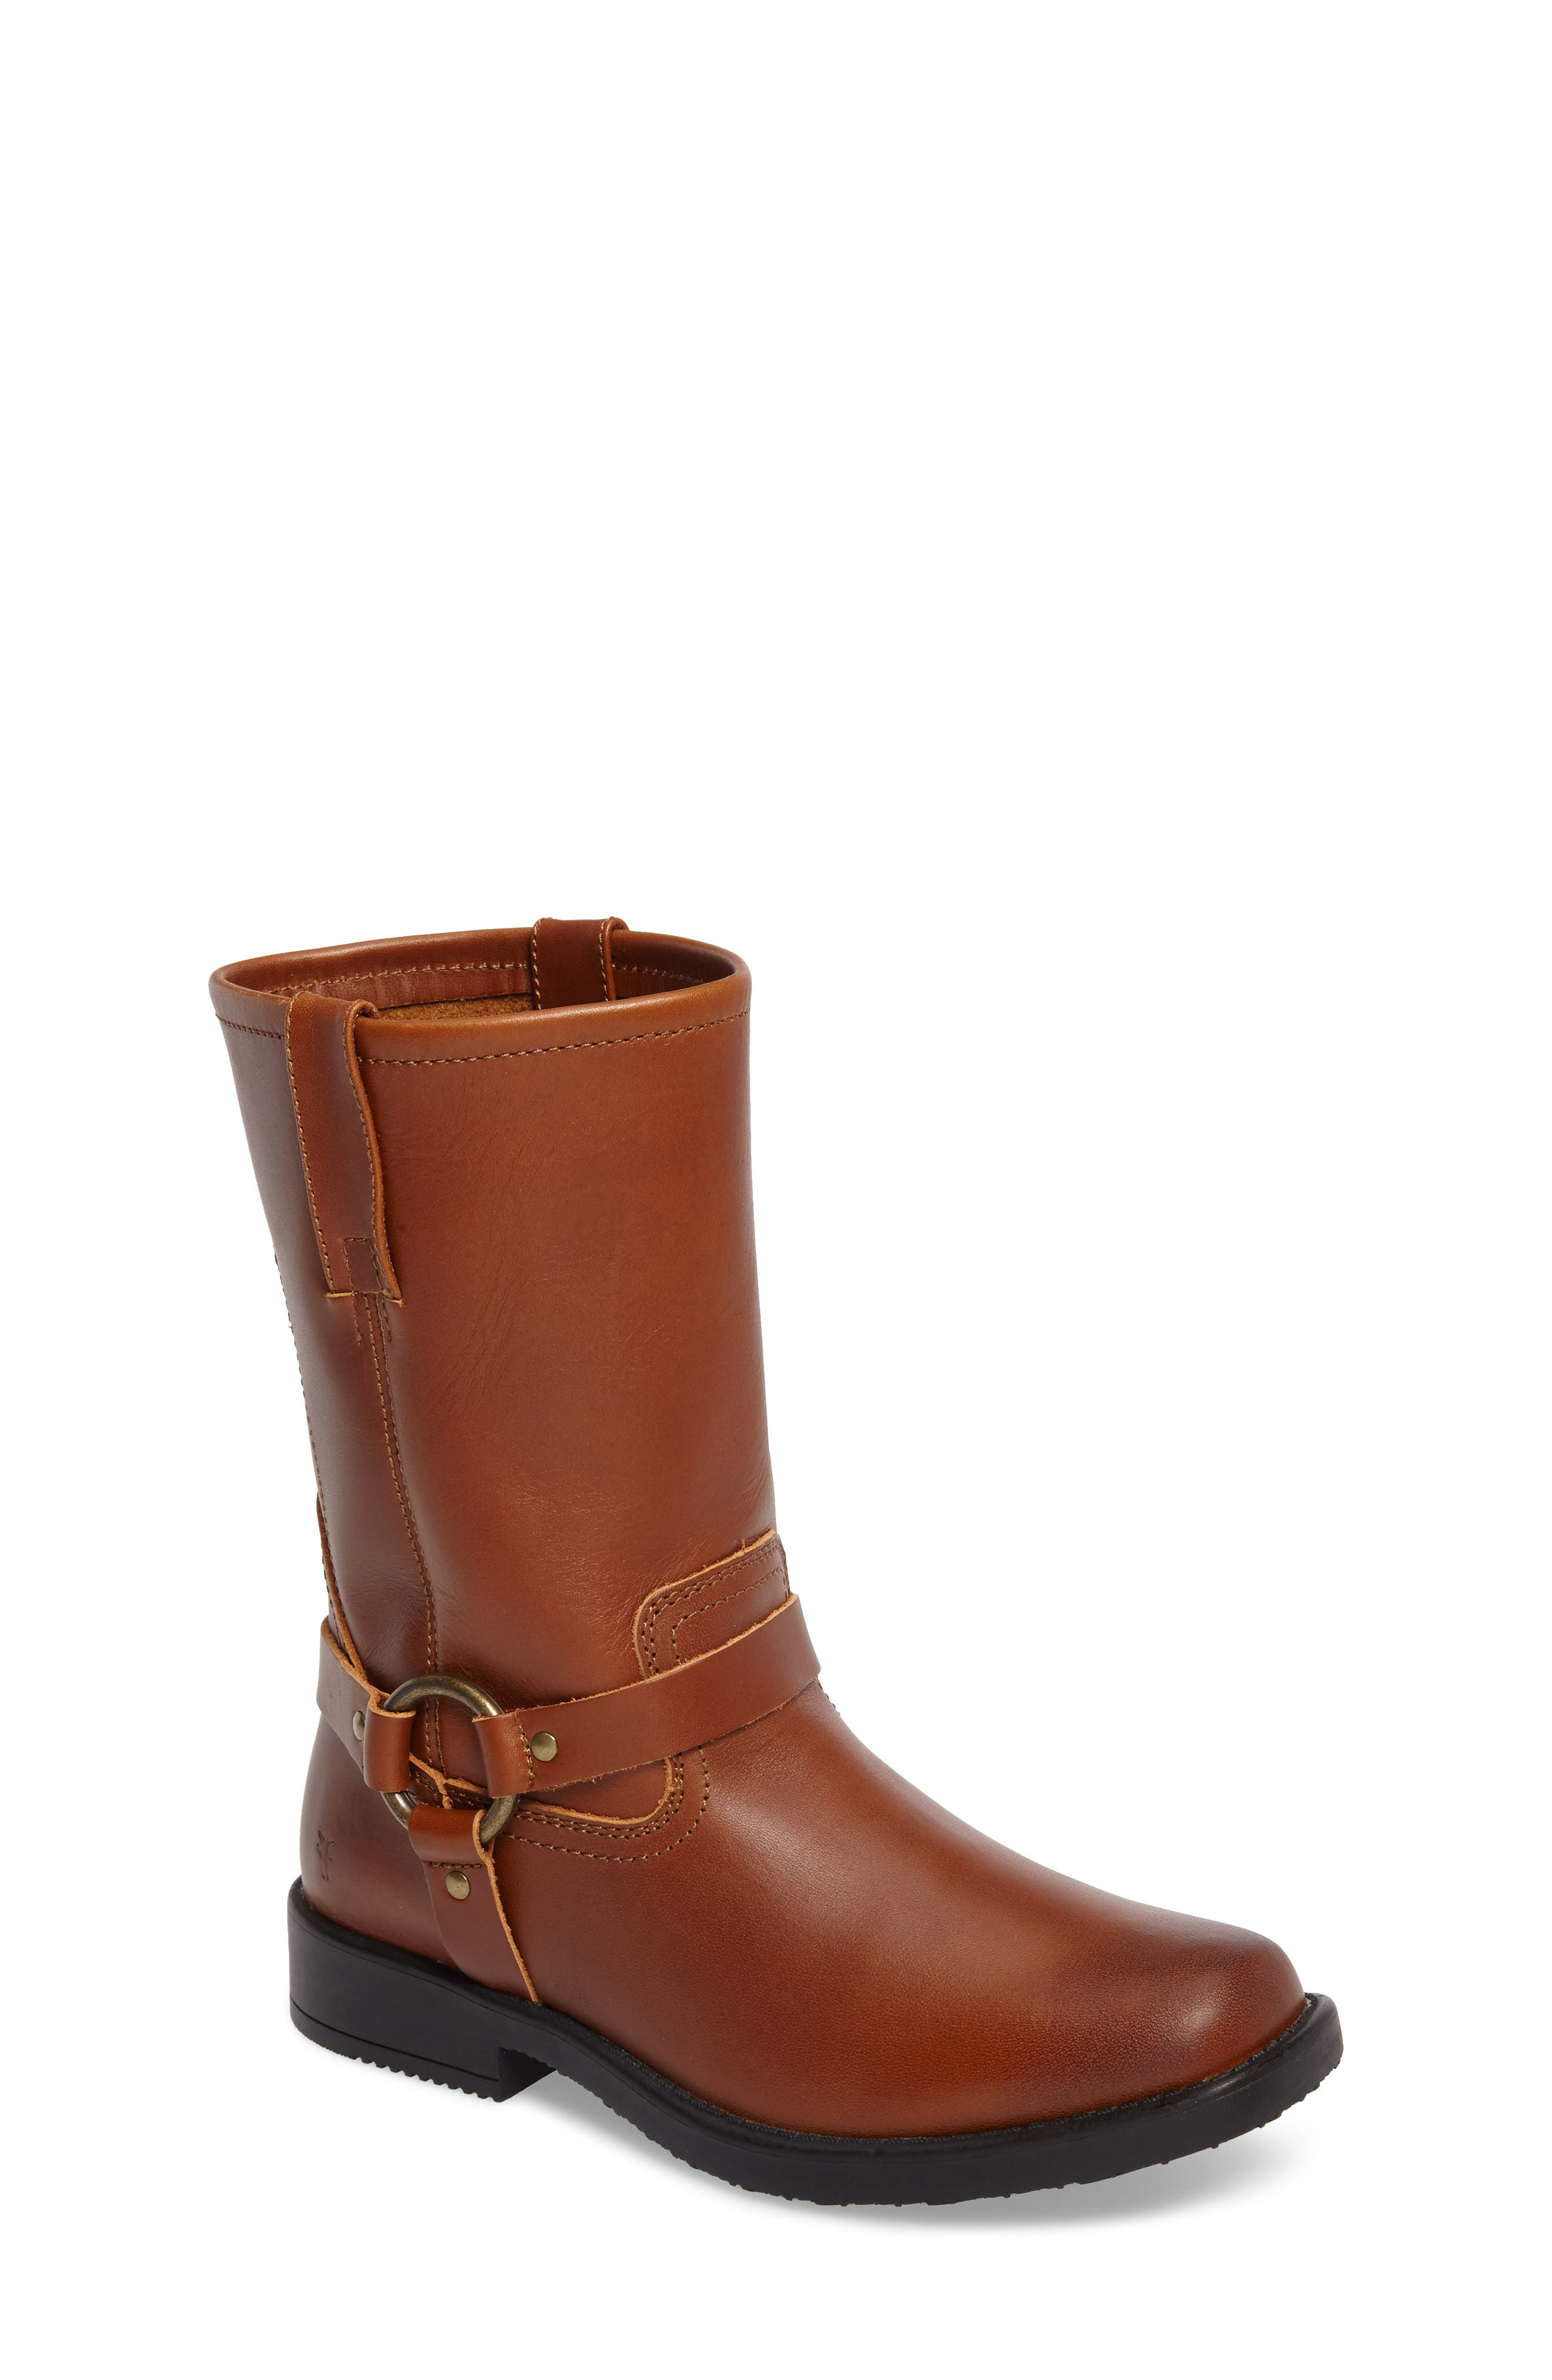 Harness Engineer Boot,                         Main,                         color, Cognac